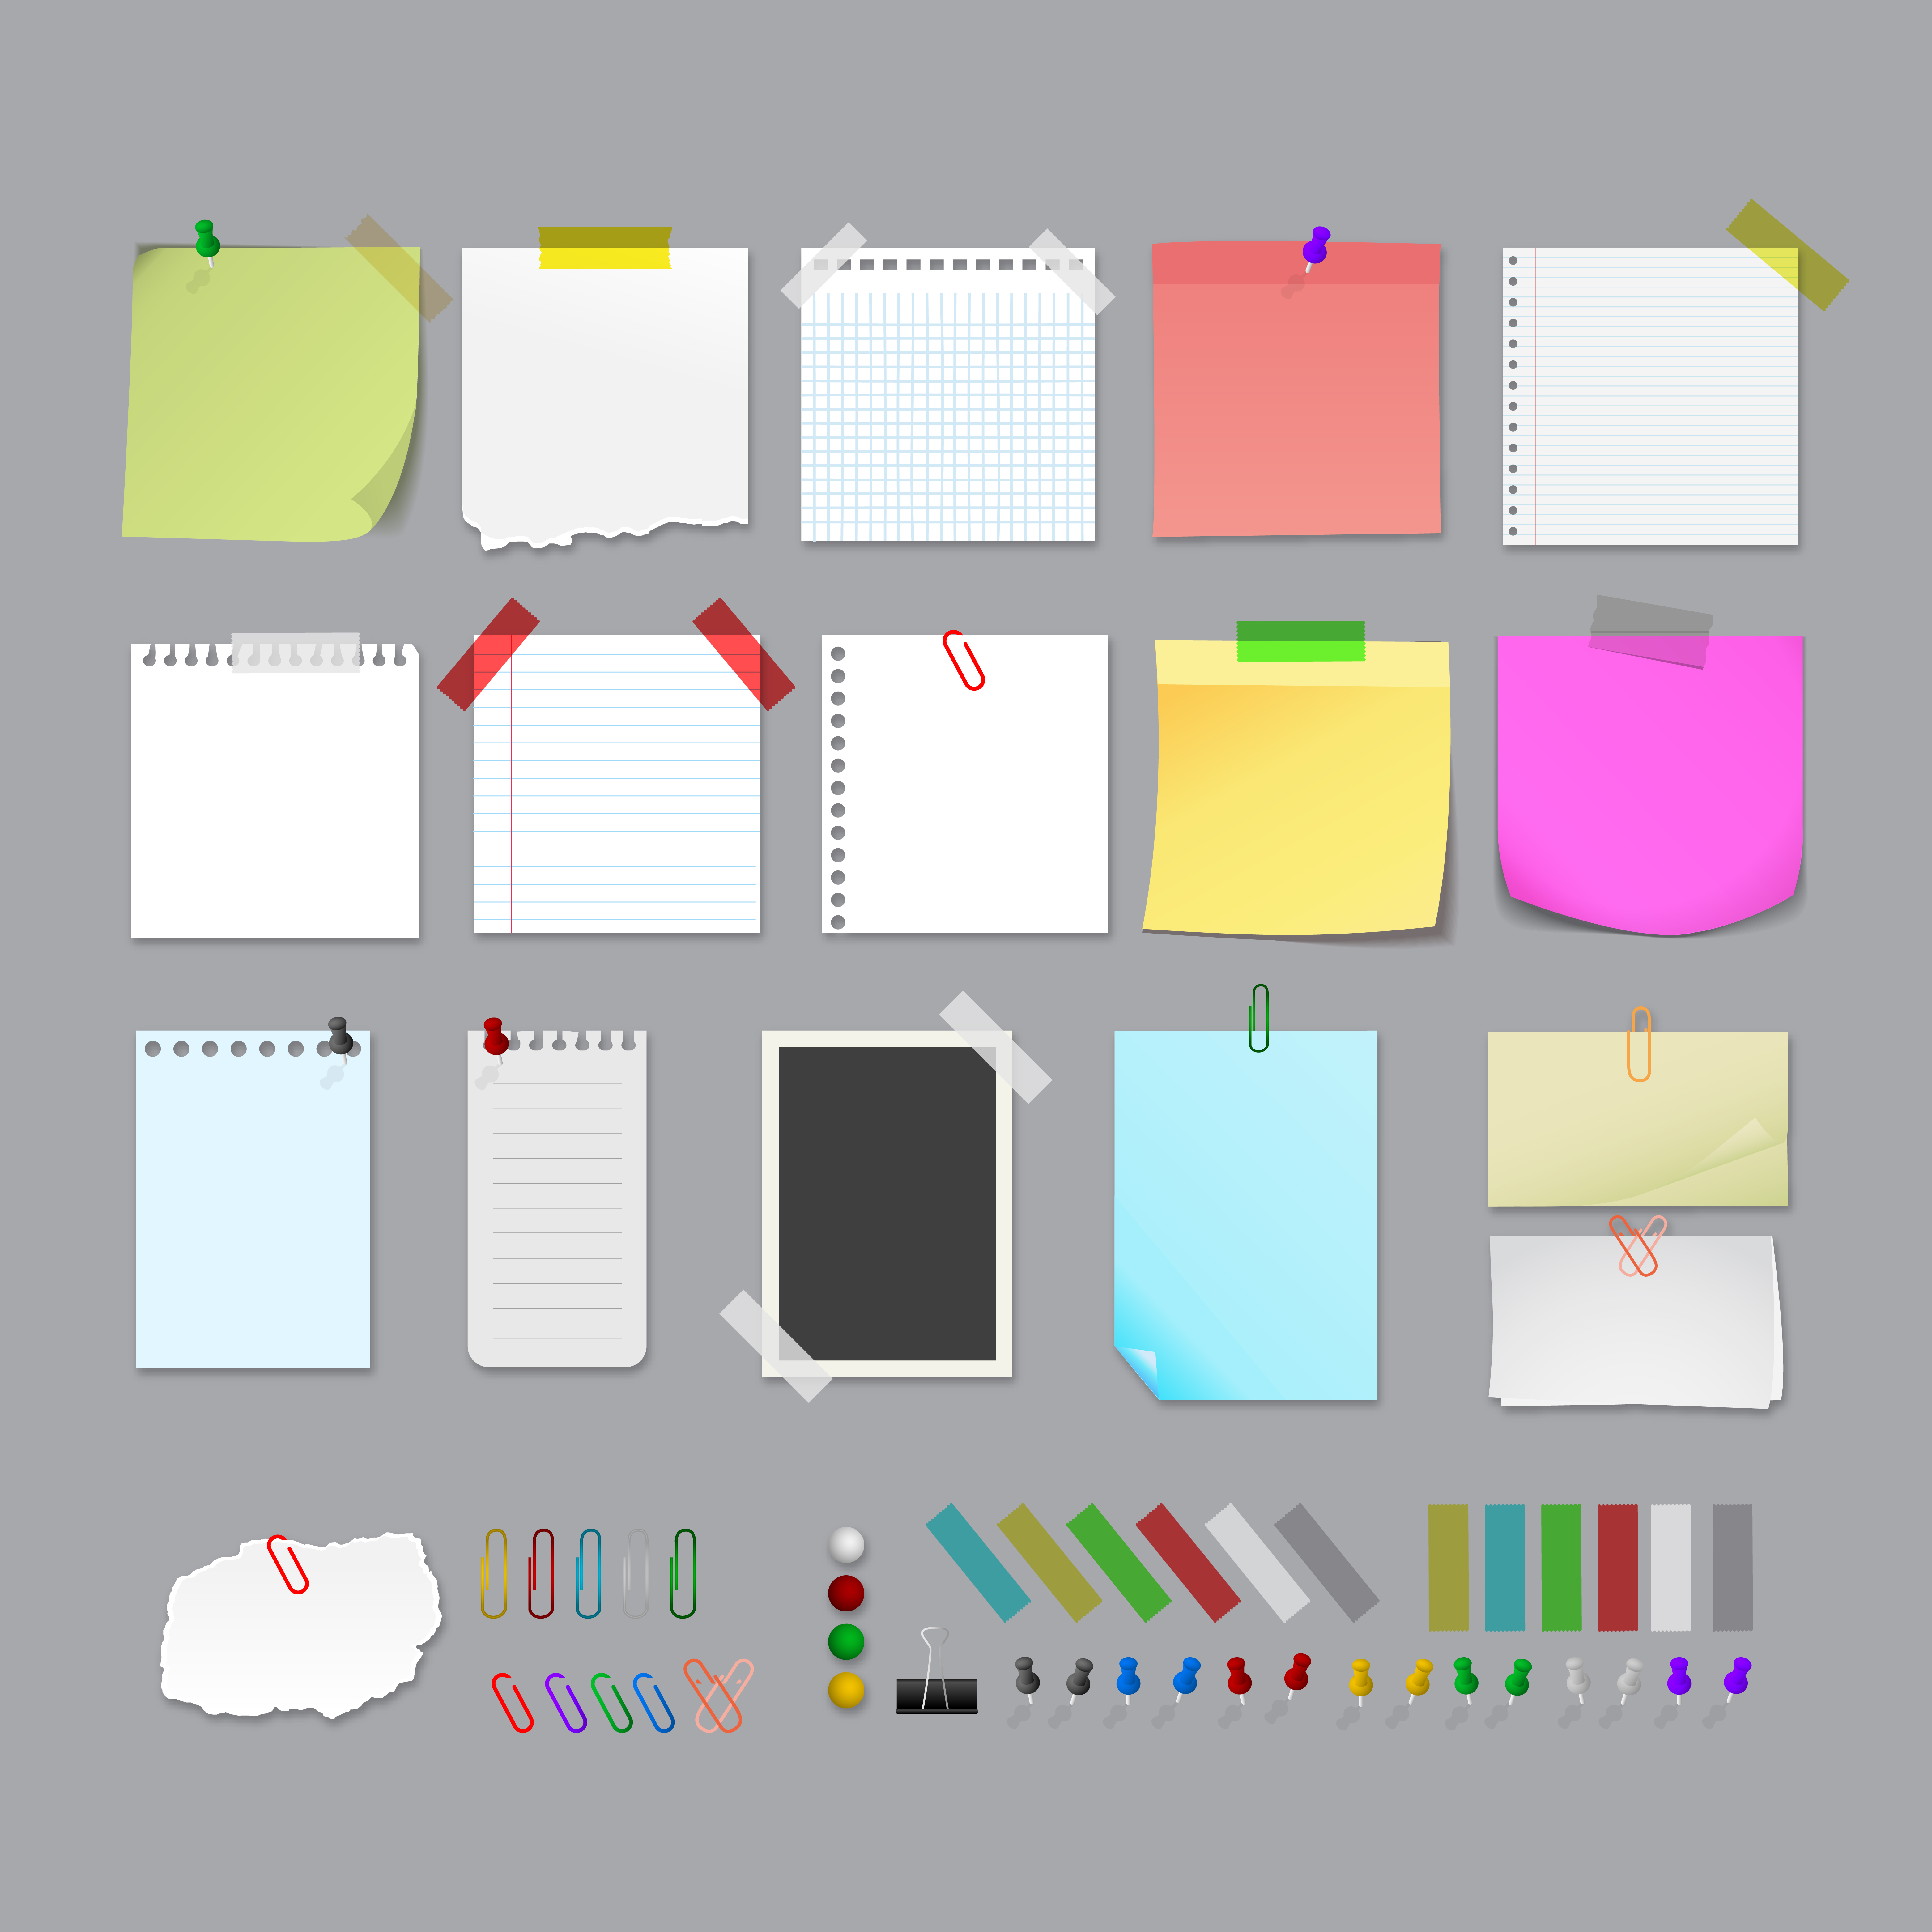 Post It Note Clipart - Post It Notes Clip Art - Free Transparent PNG Clipart  Images Download